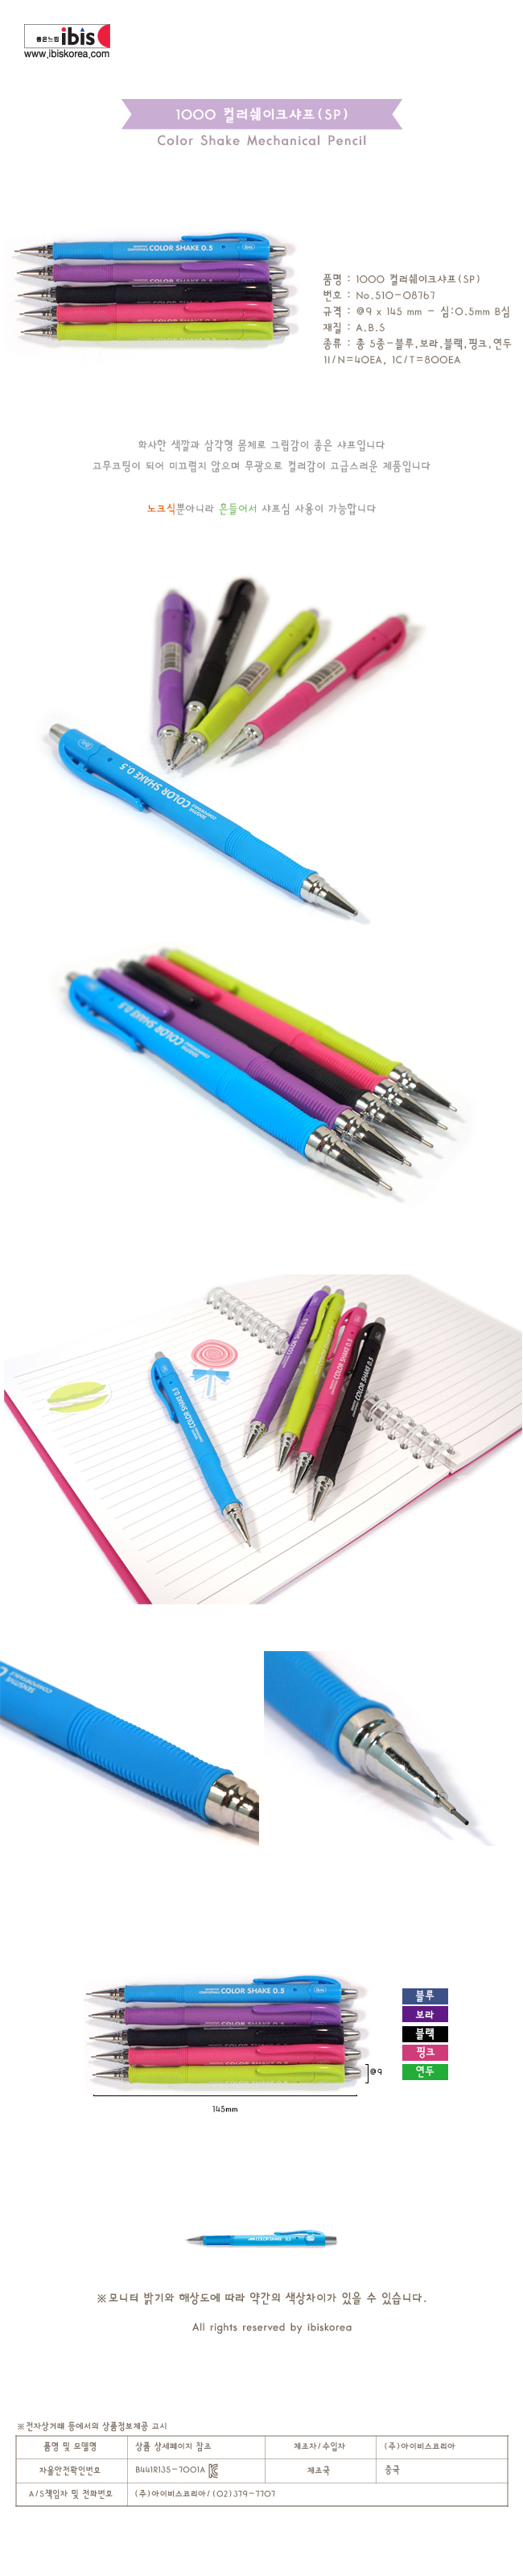 510-08767-1000ColorShakeMechanicalPencil.jpg: http://www.daisomall.co.kr/shop/iframe_detail.php?id=0000101839